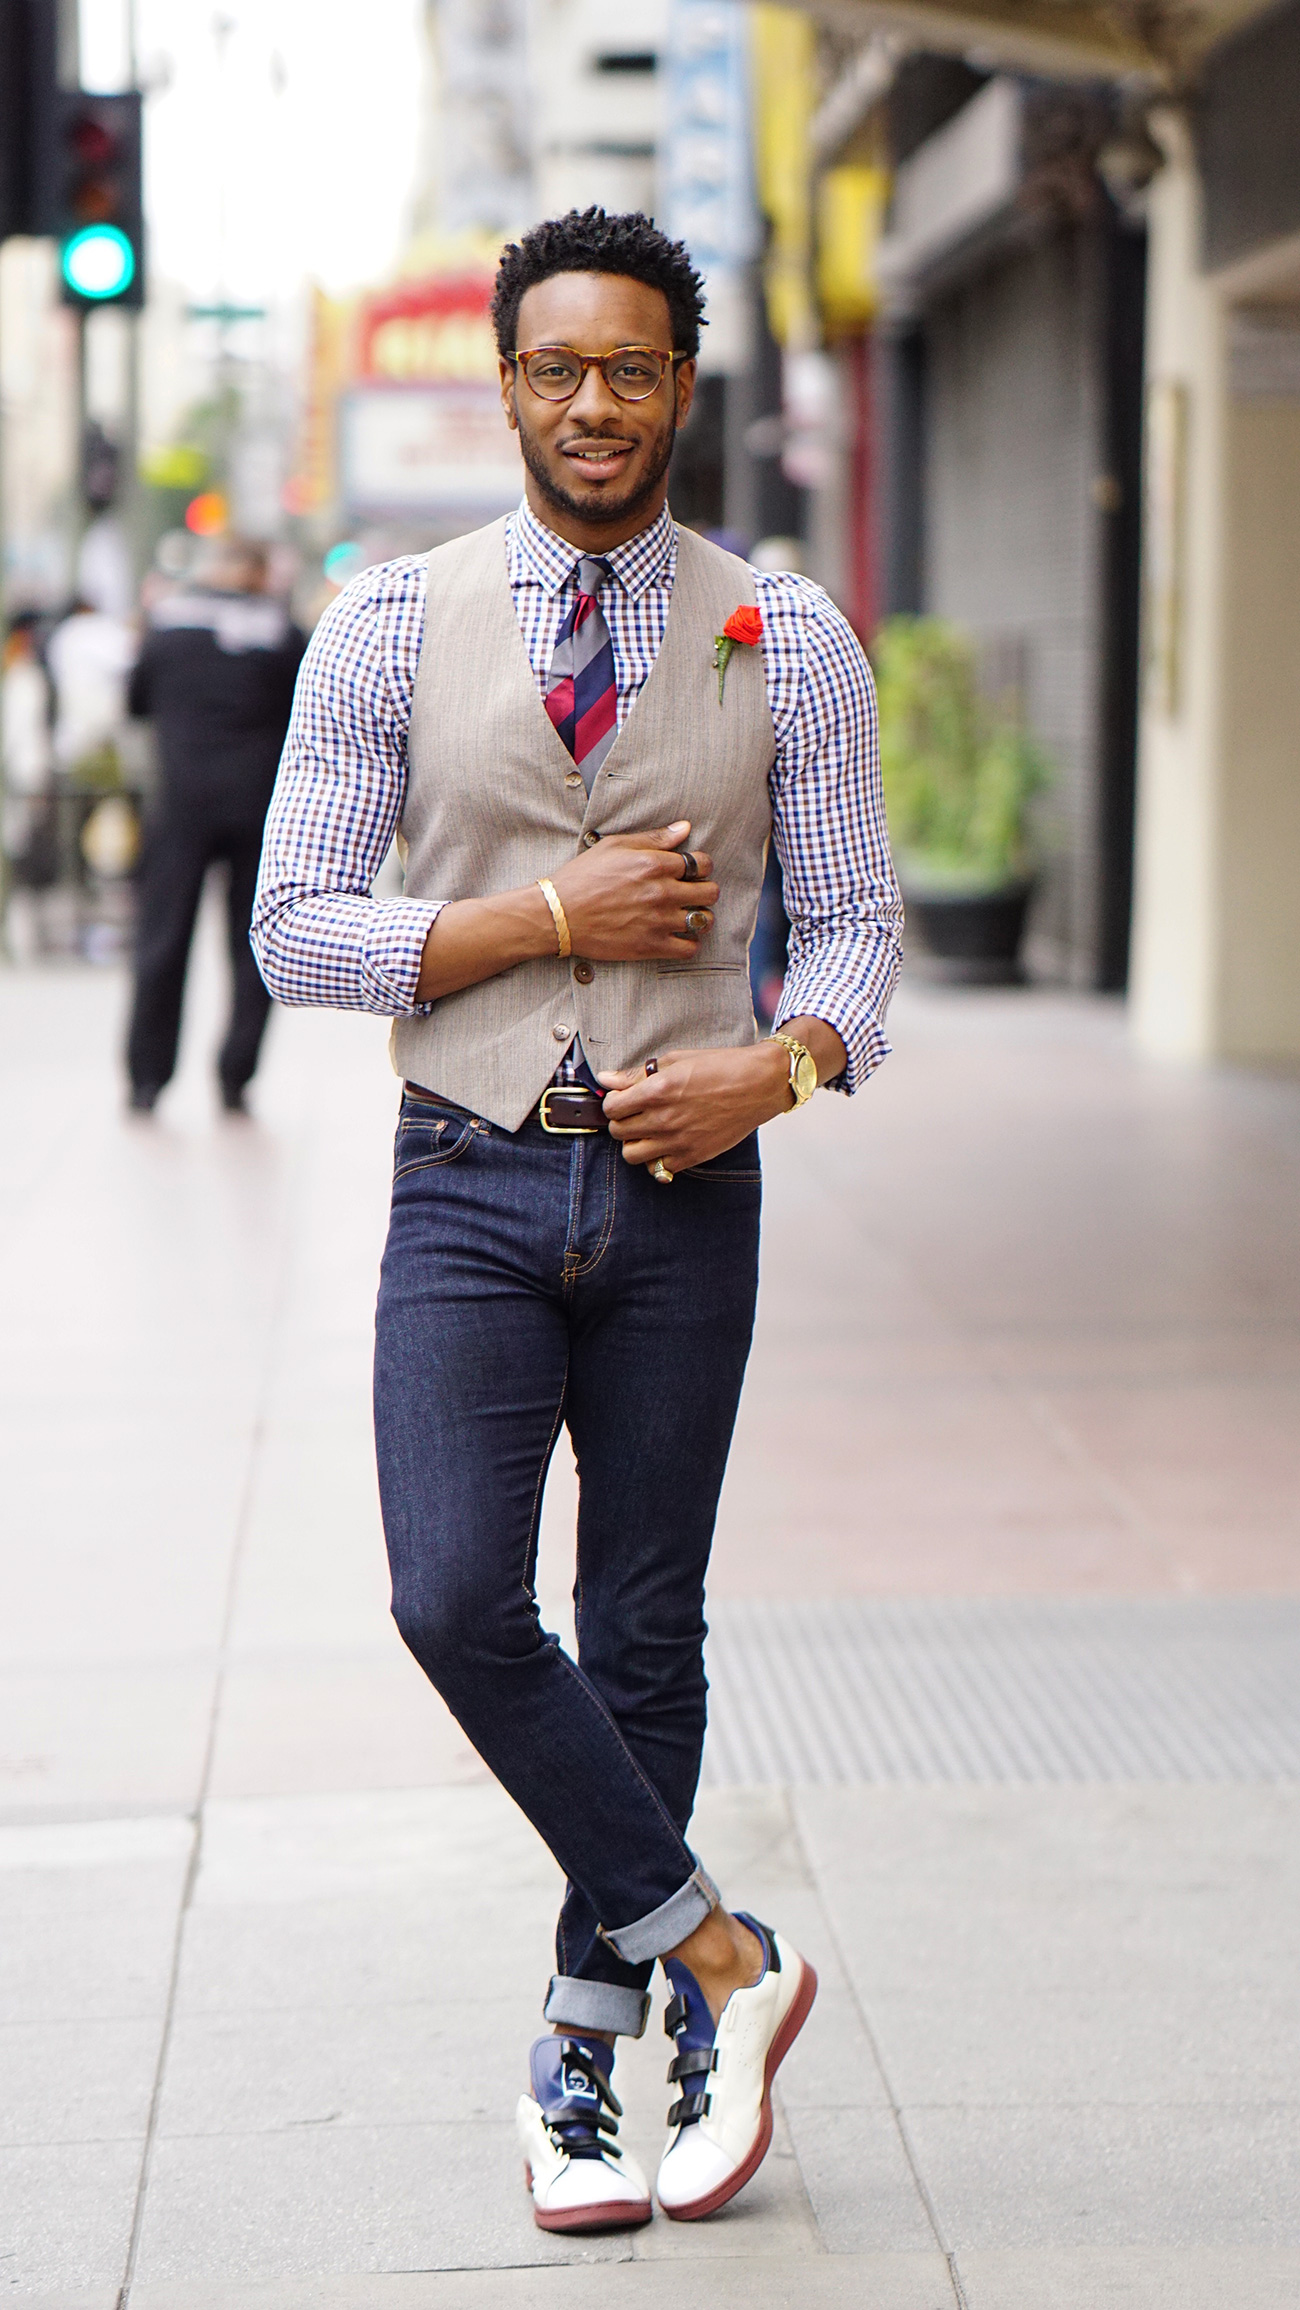 Casual Dress Shoes For Men With Jeans